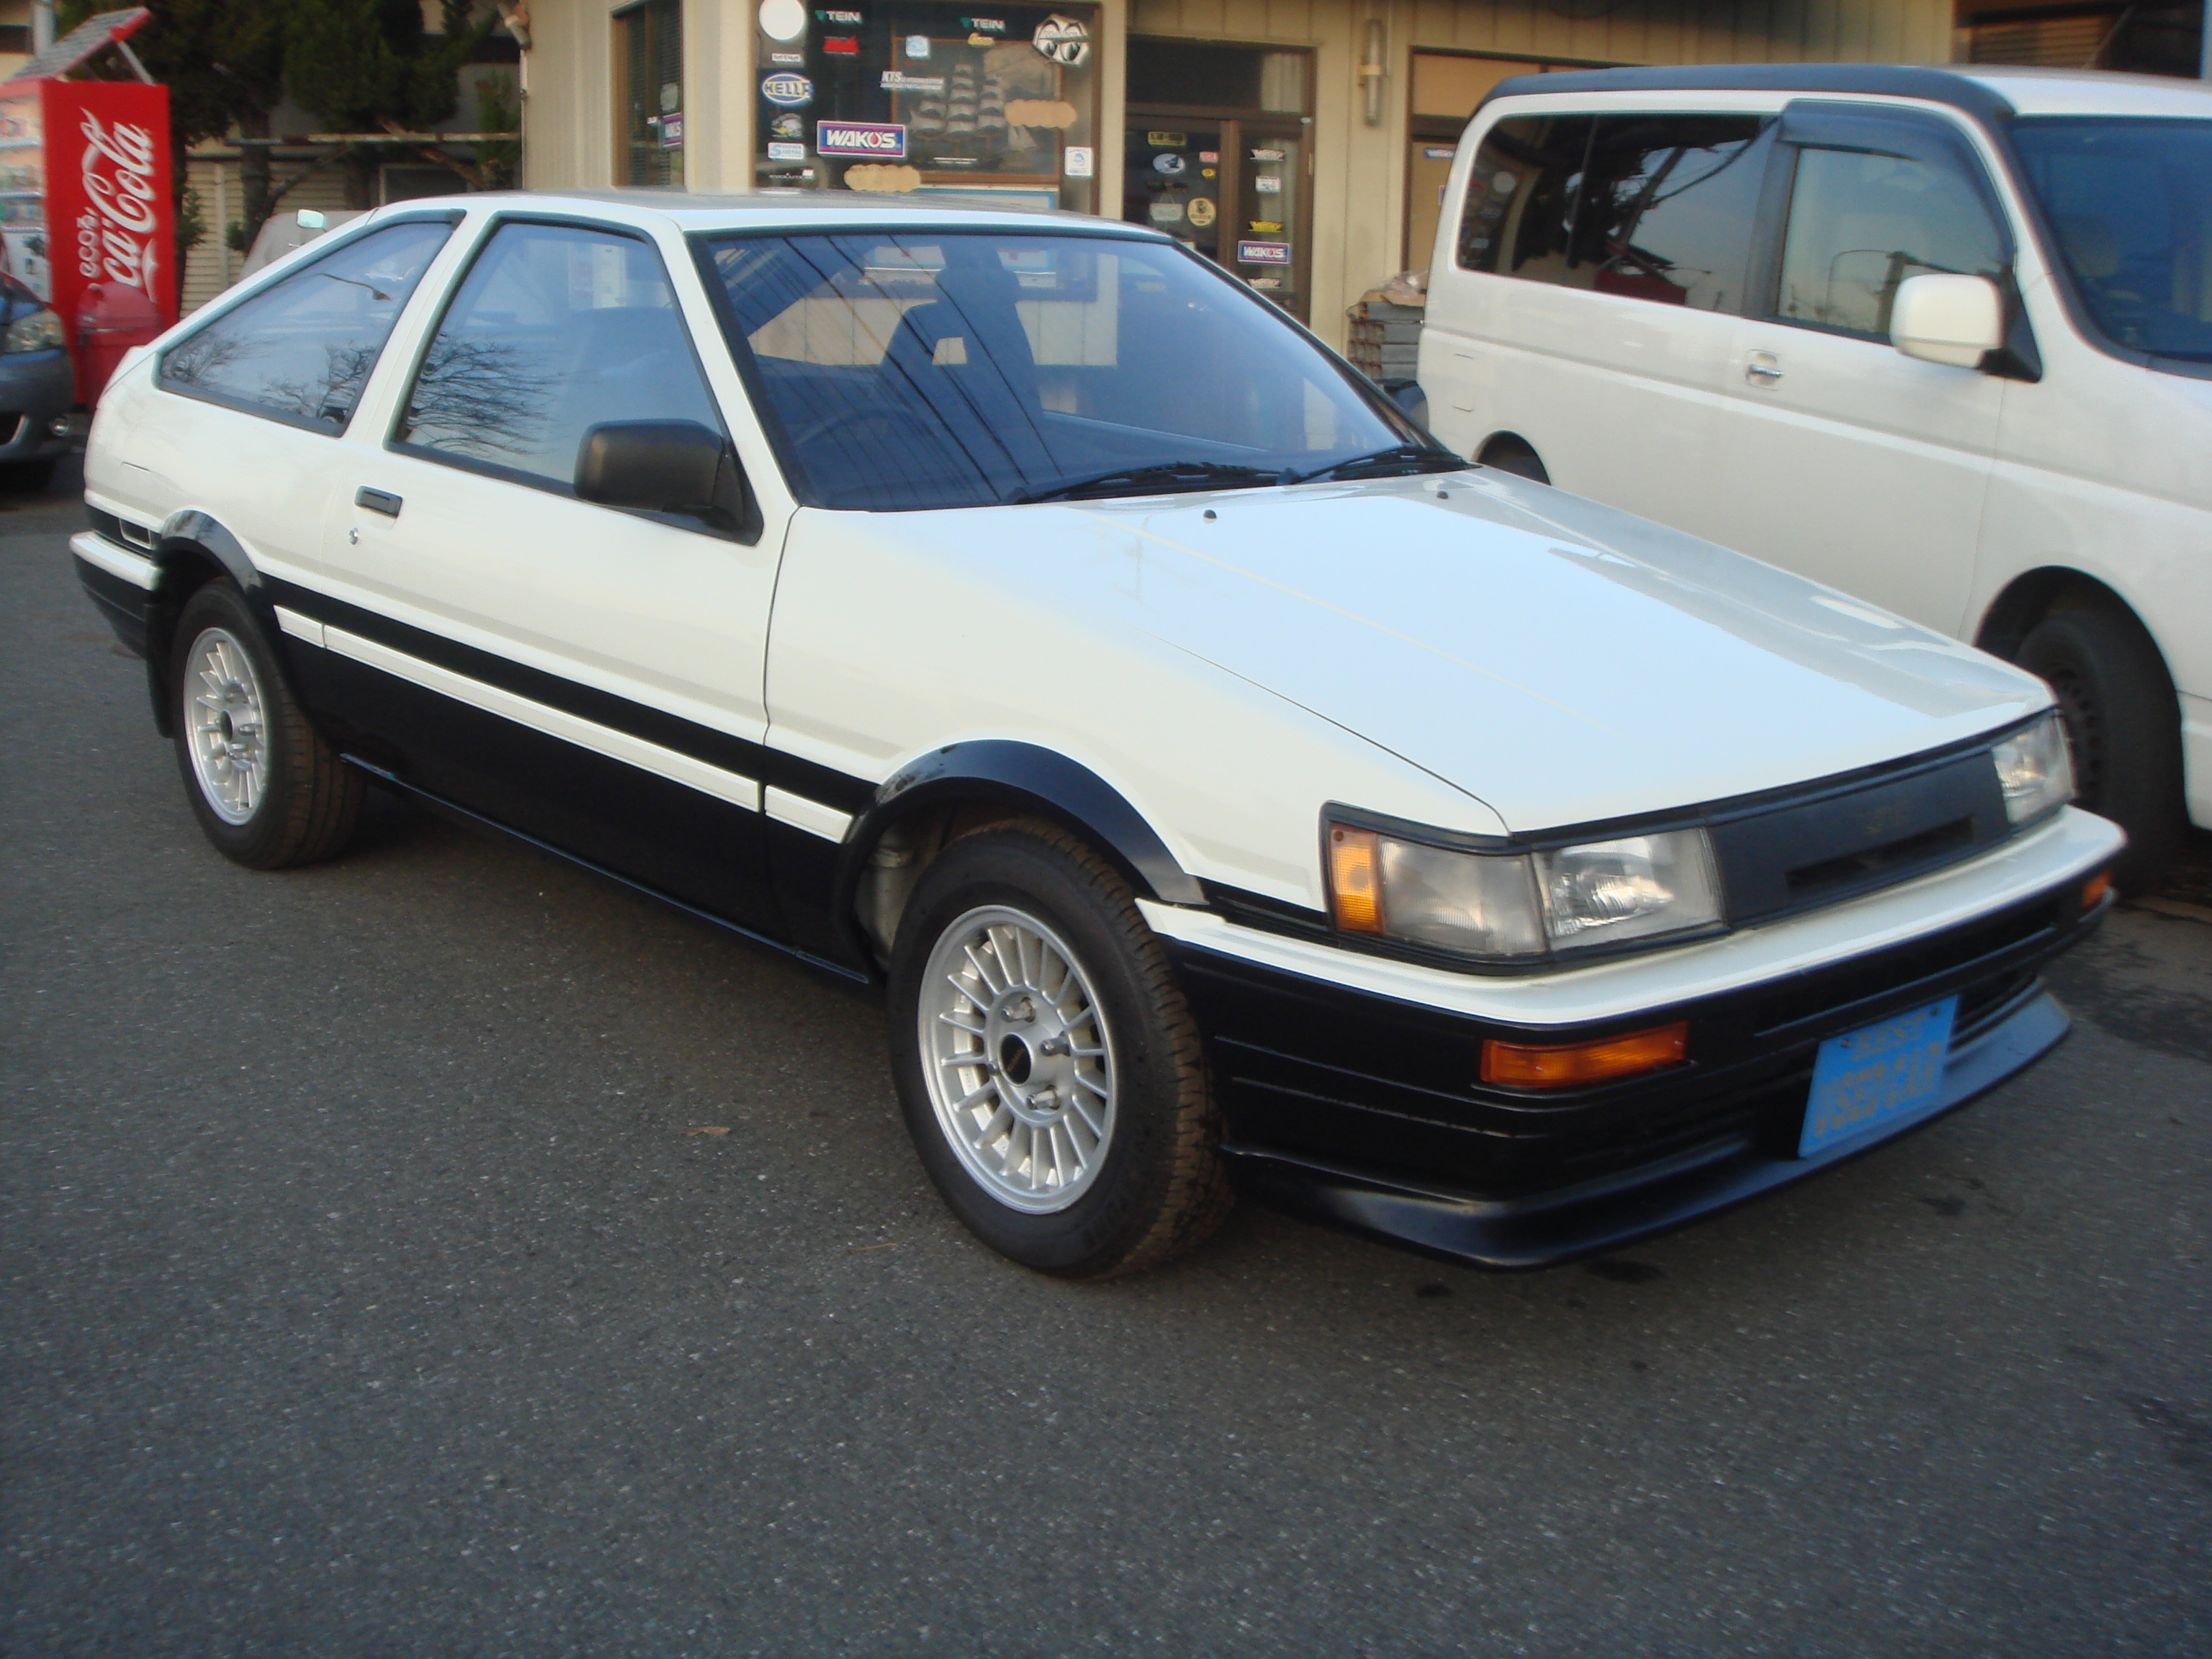 1985 YEAR TOYOTA LEVIN COUPE AE86 GT-APEX TWIN CAM